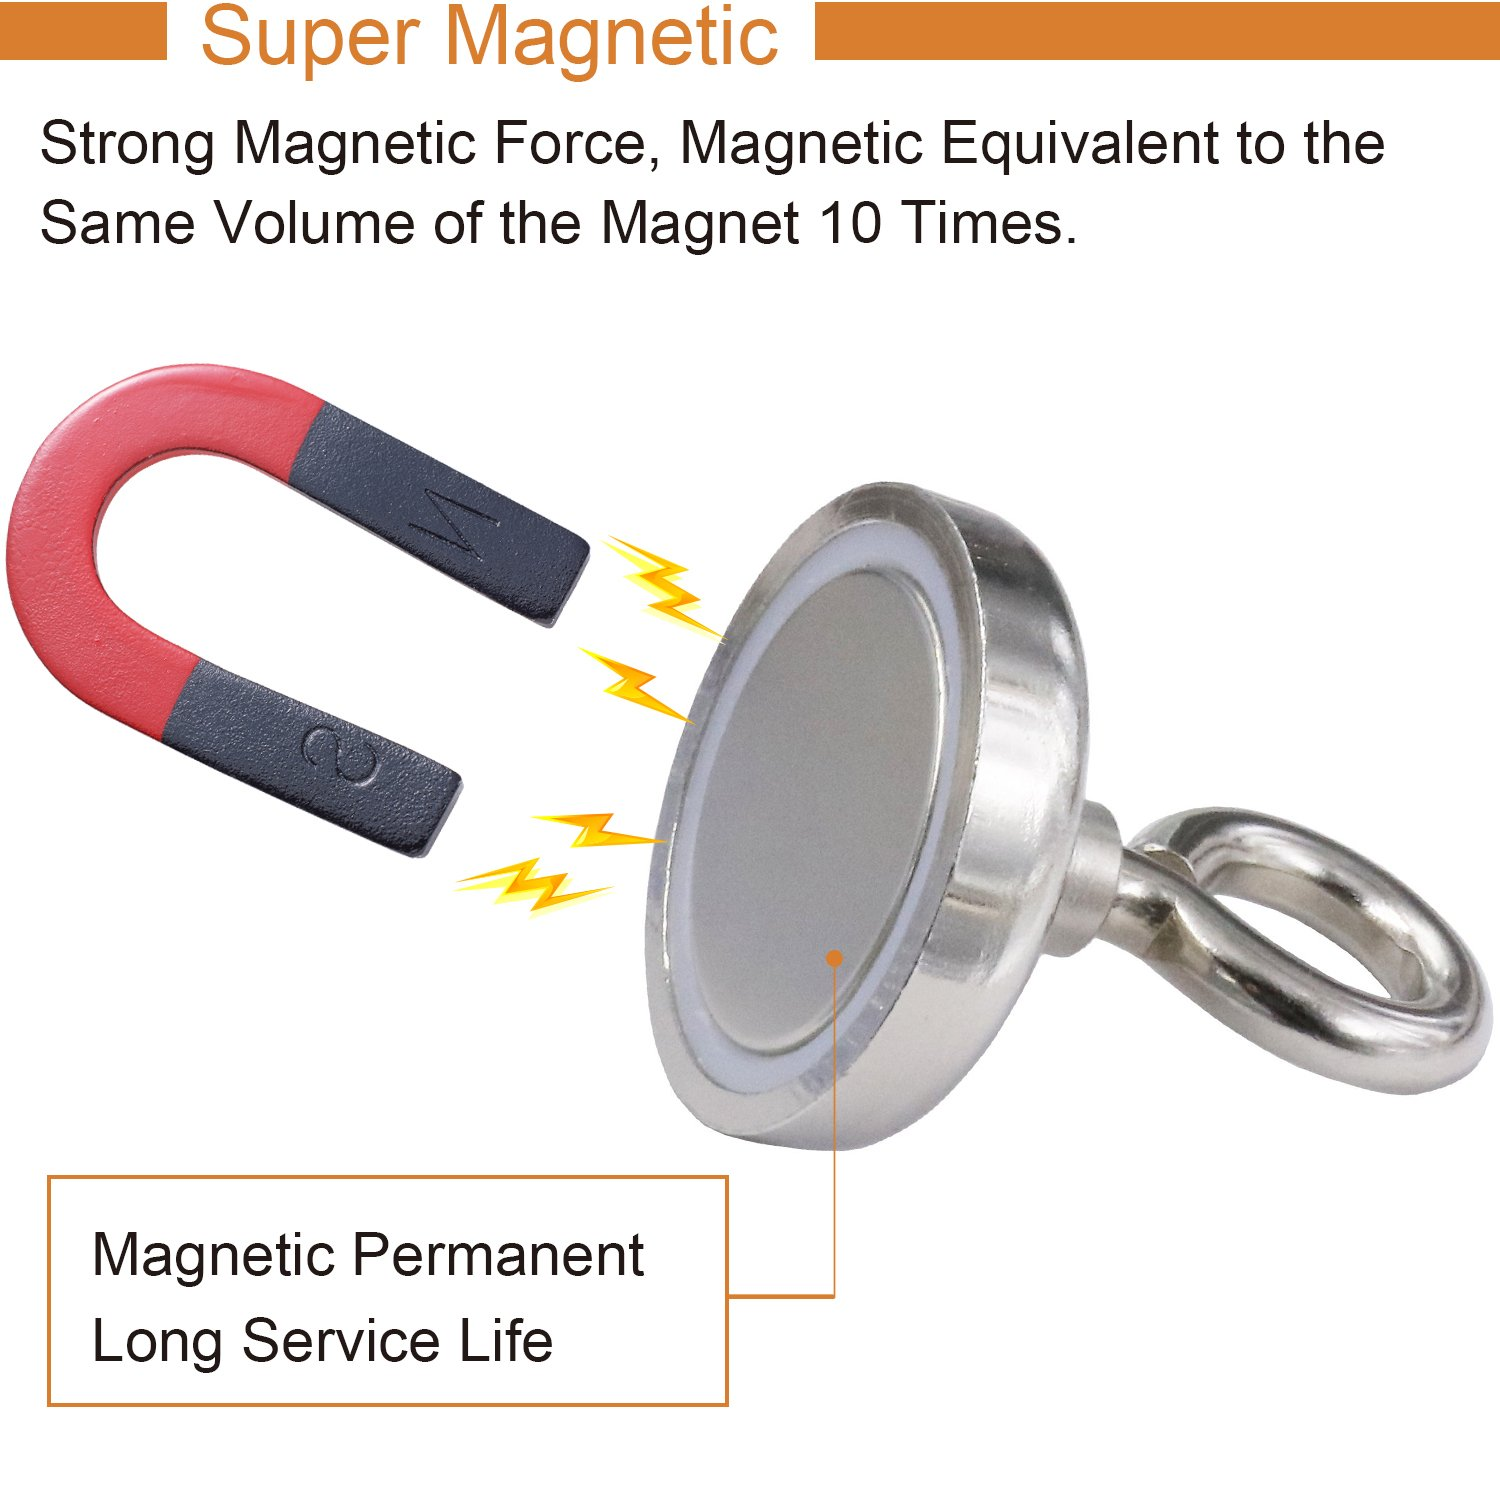 Super Strong Neodymium Fishing Magnets 175 Lbs80 Kg Pulling Force Here Comes The Strongest Magnetic Field To Be Ever Created Rare Earth Magnet With Eyebolt Diameter 189 Inch48 Mm For Retrieving In River And